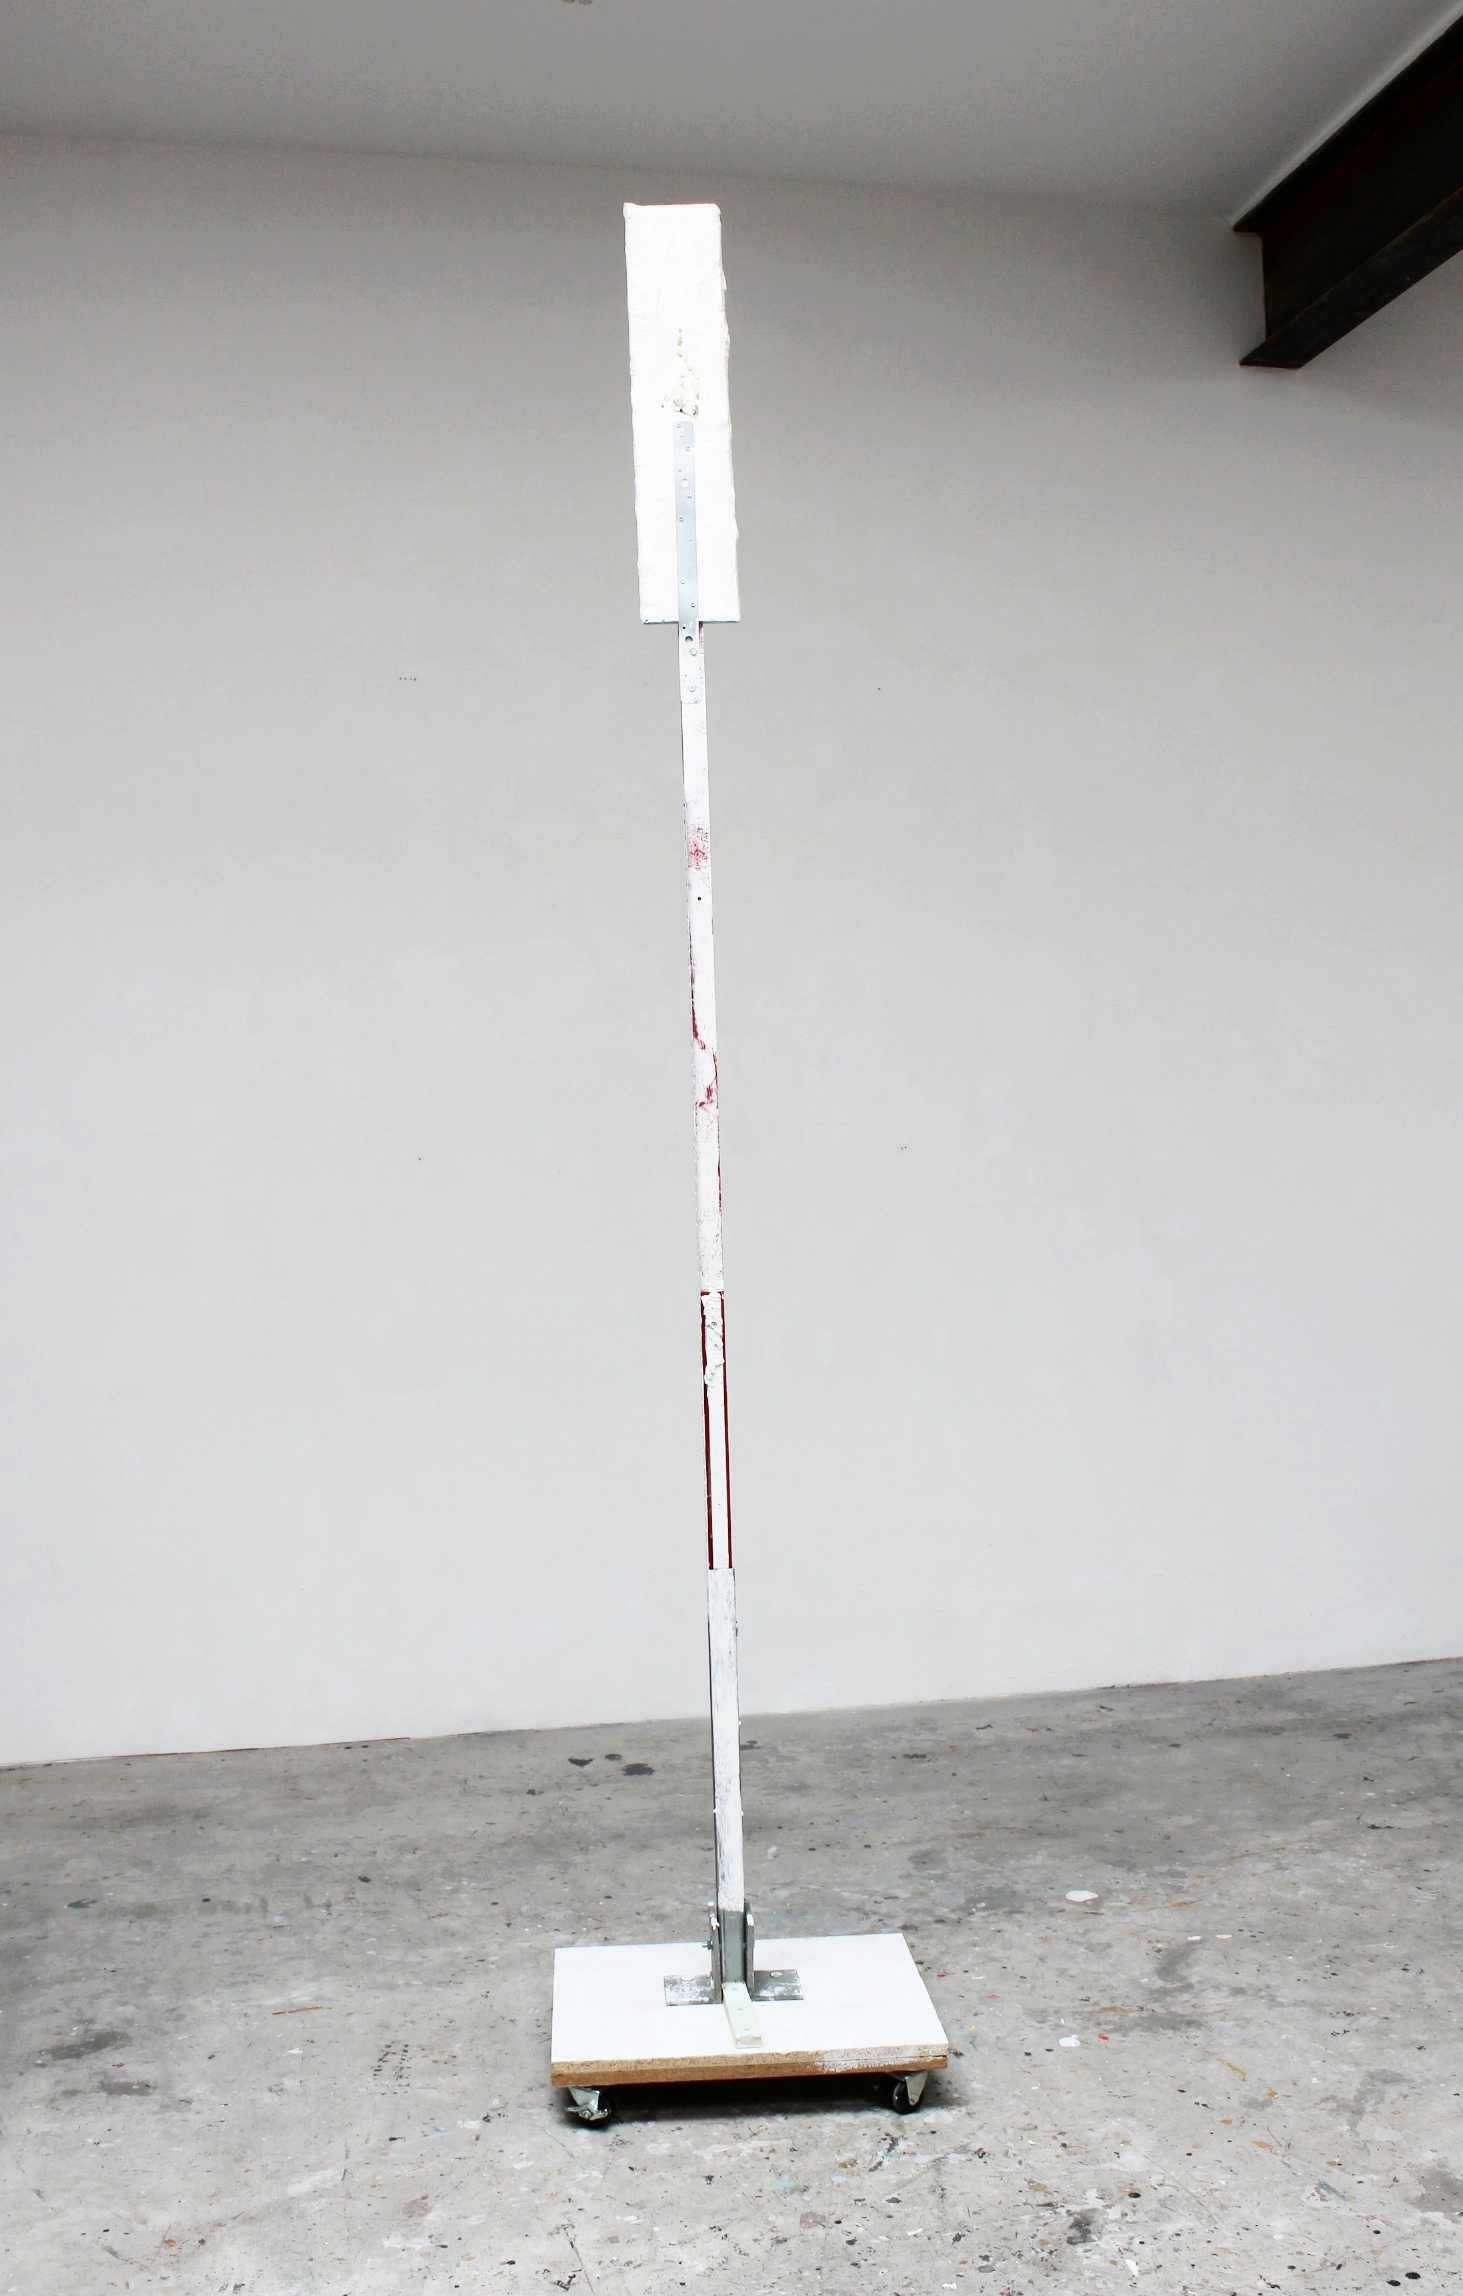 Utile #17 2018 117.5 x 23.375 x 19.375 inches